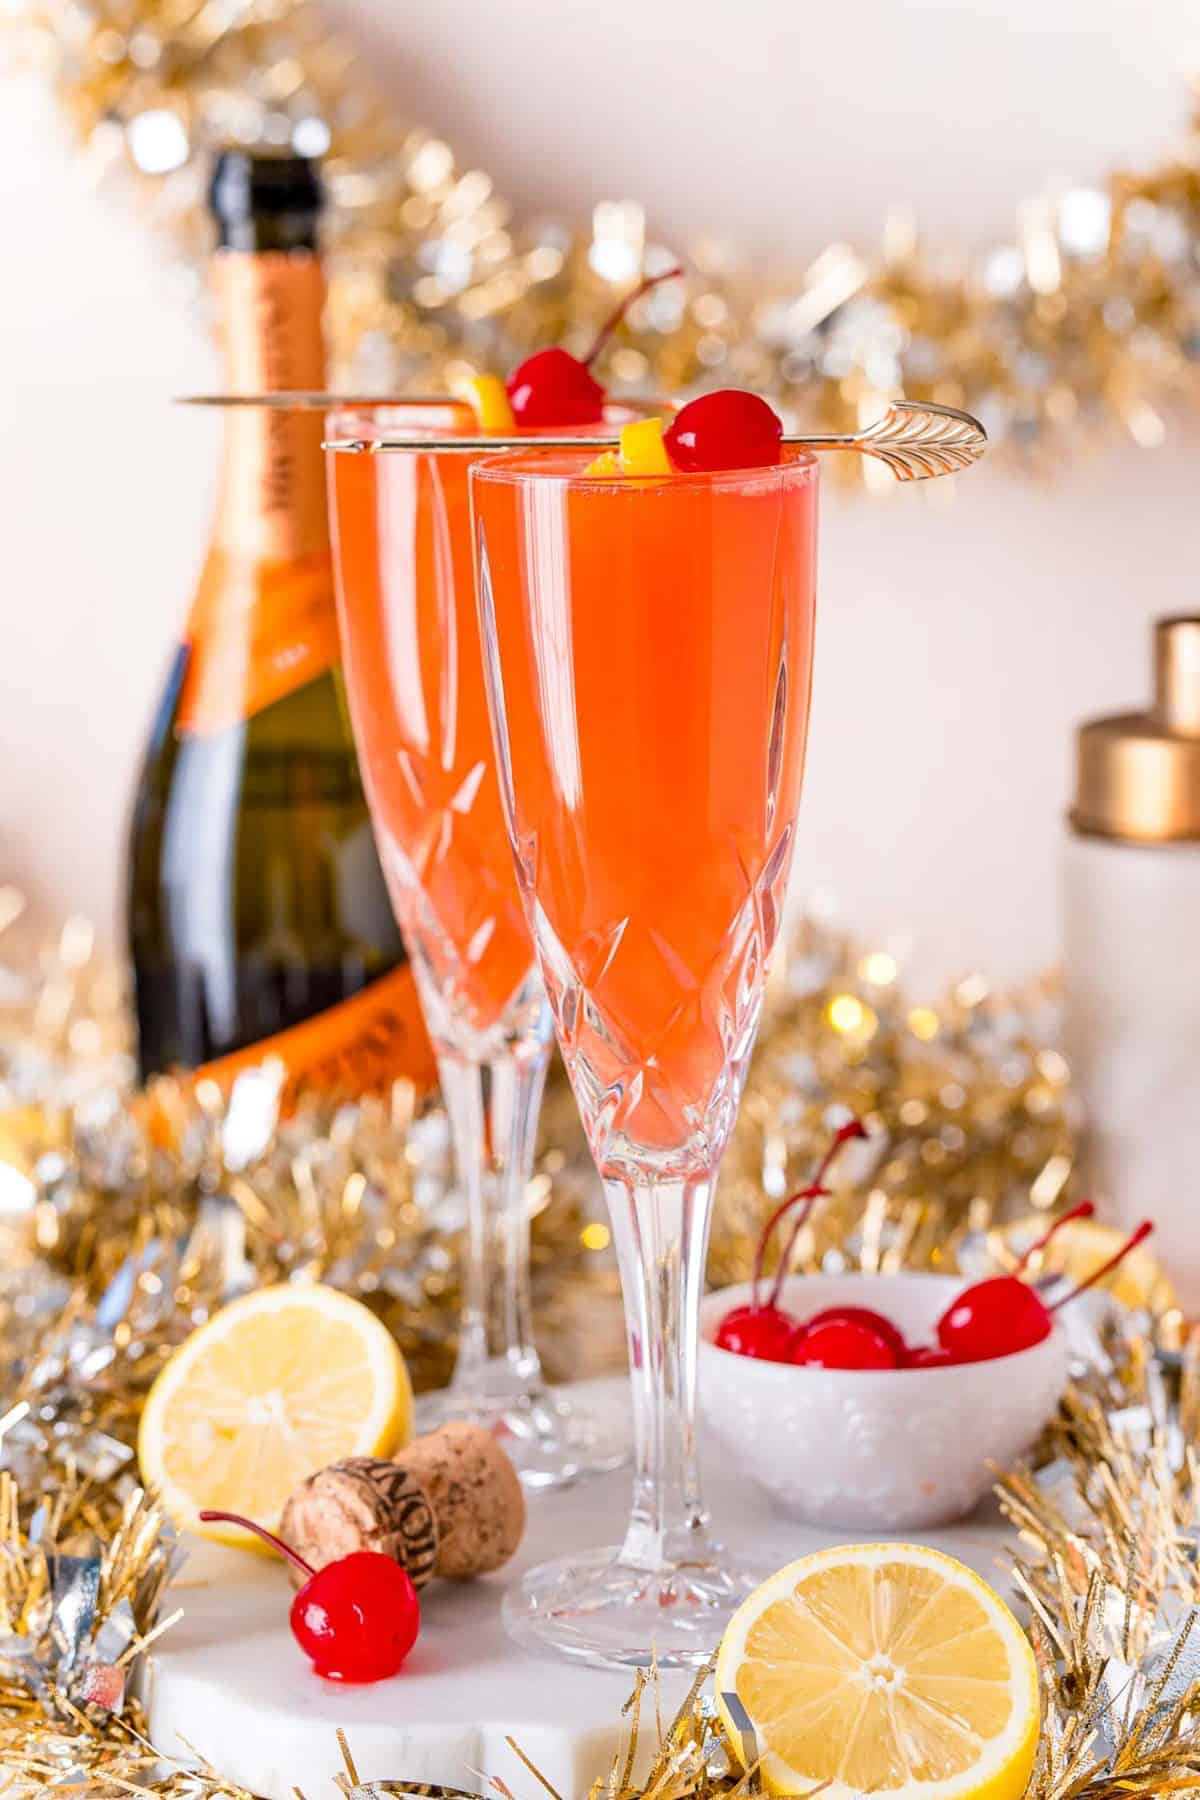 Two champagne flutes with a light red drink garnished with cherries and lemon.